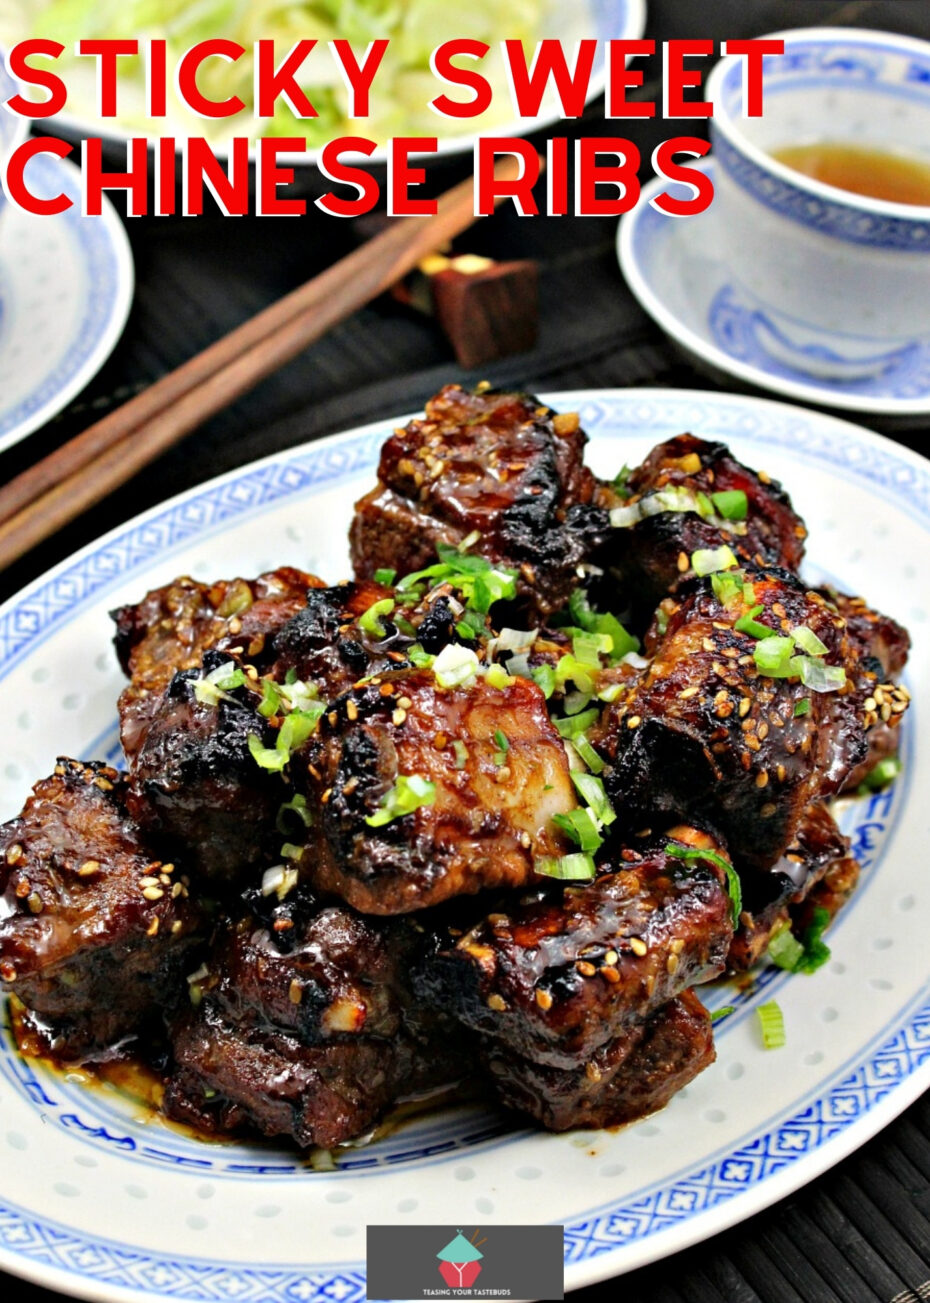 Sticky Sweet Chinese Ribs! Delicious sticky Asian ribs. Great as an appetizer, party food or part of a Chinese Dinner. Very easy to make too!